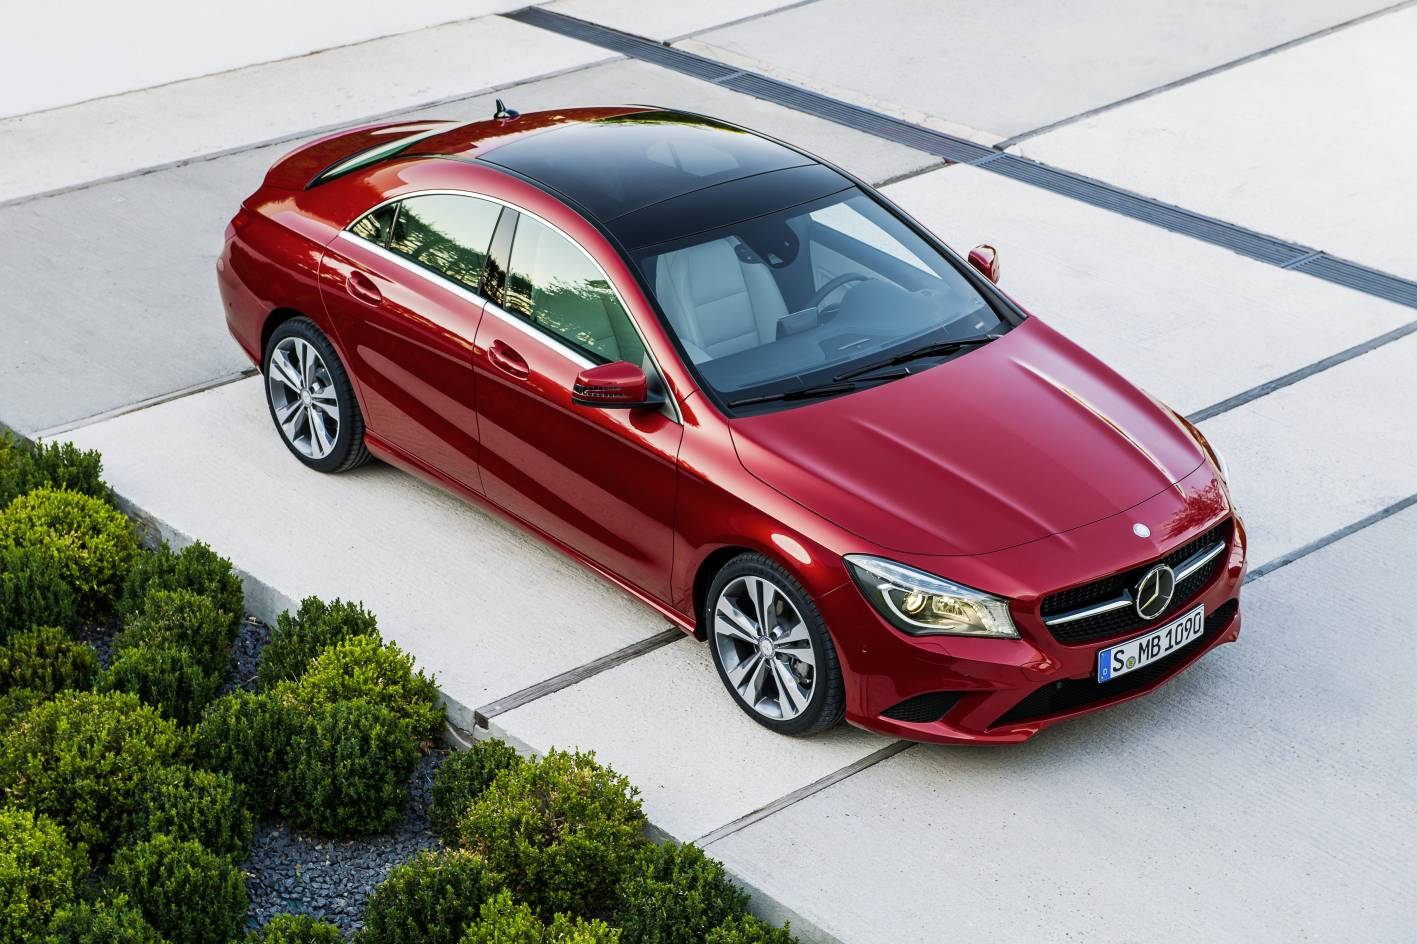 mercedes benz cla premiered at 2013 detroit motor show. Black Bedroom Furniture Sets. Home Design Ideas